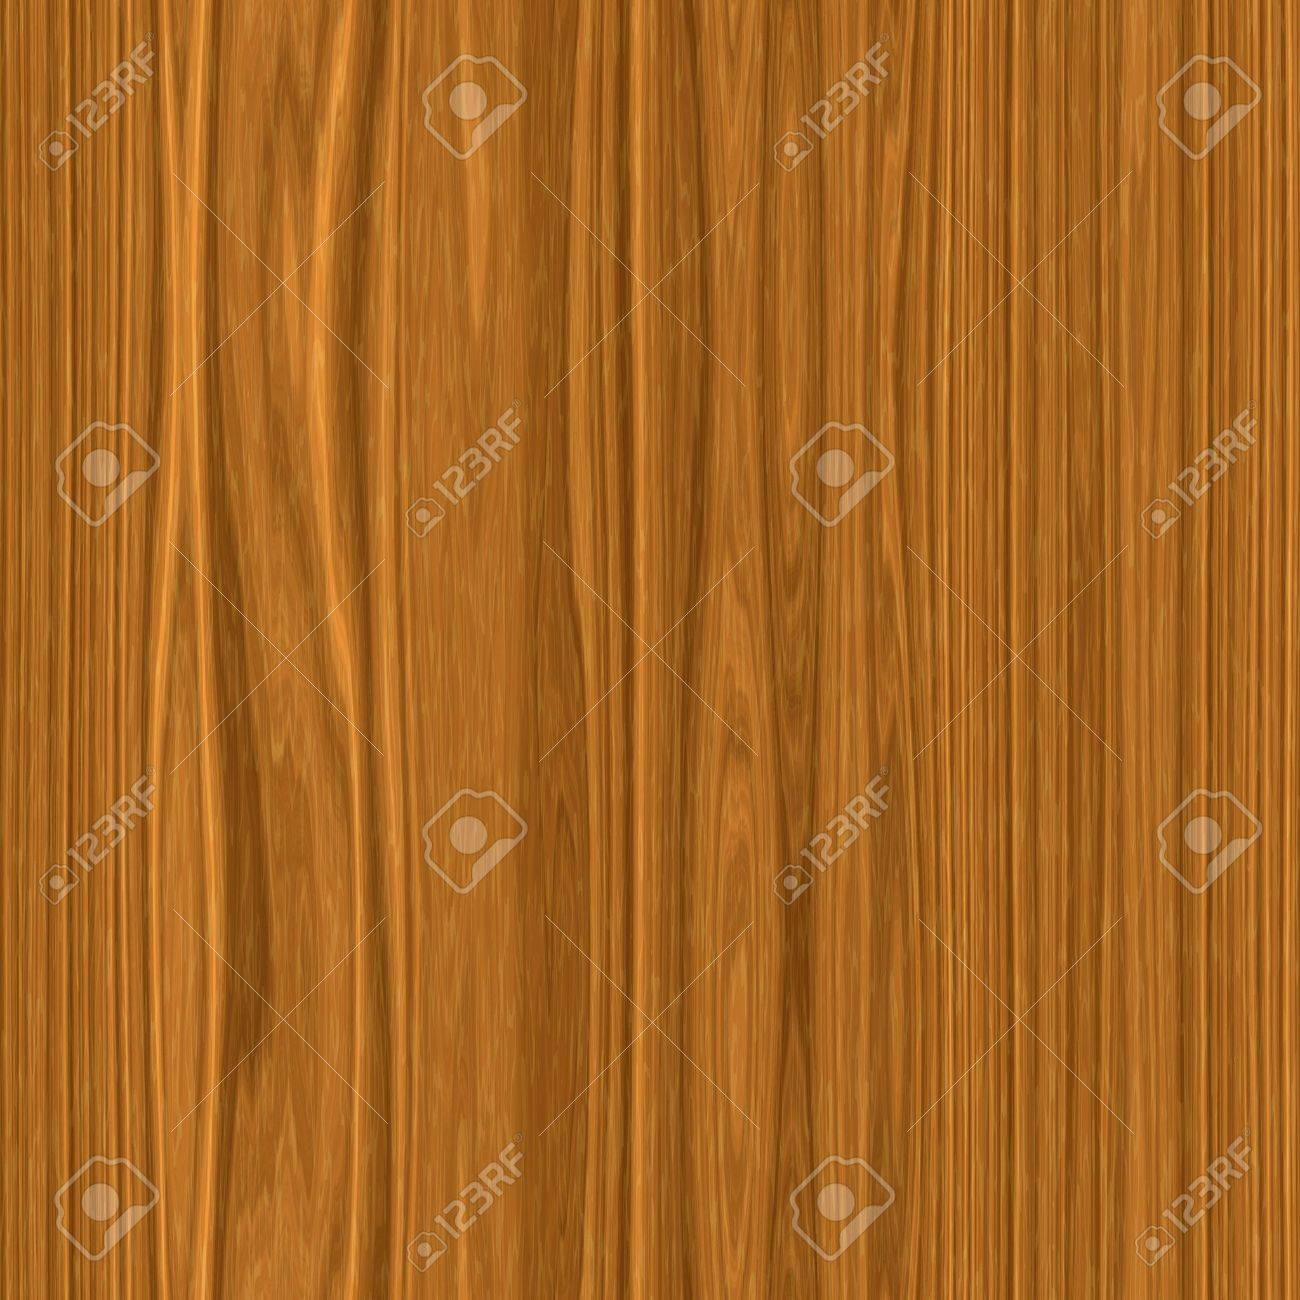 Seamless oak or pine woodgrain texture that tiles as a pattern in any direction  Stock. Seamless Oak Or Pine Woodgrain Texture That Tiles As A Pattern